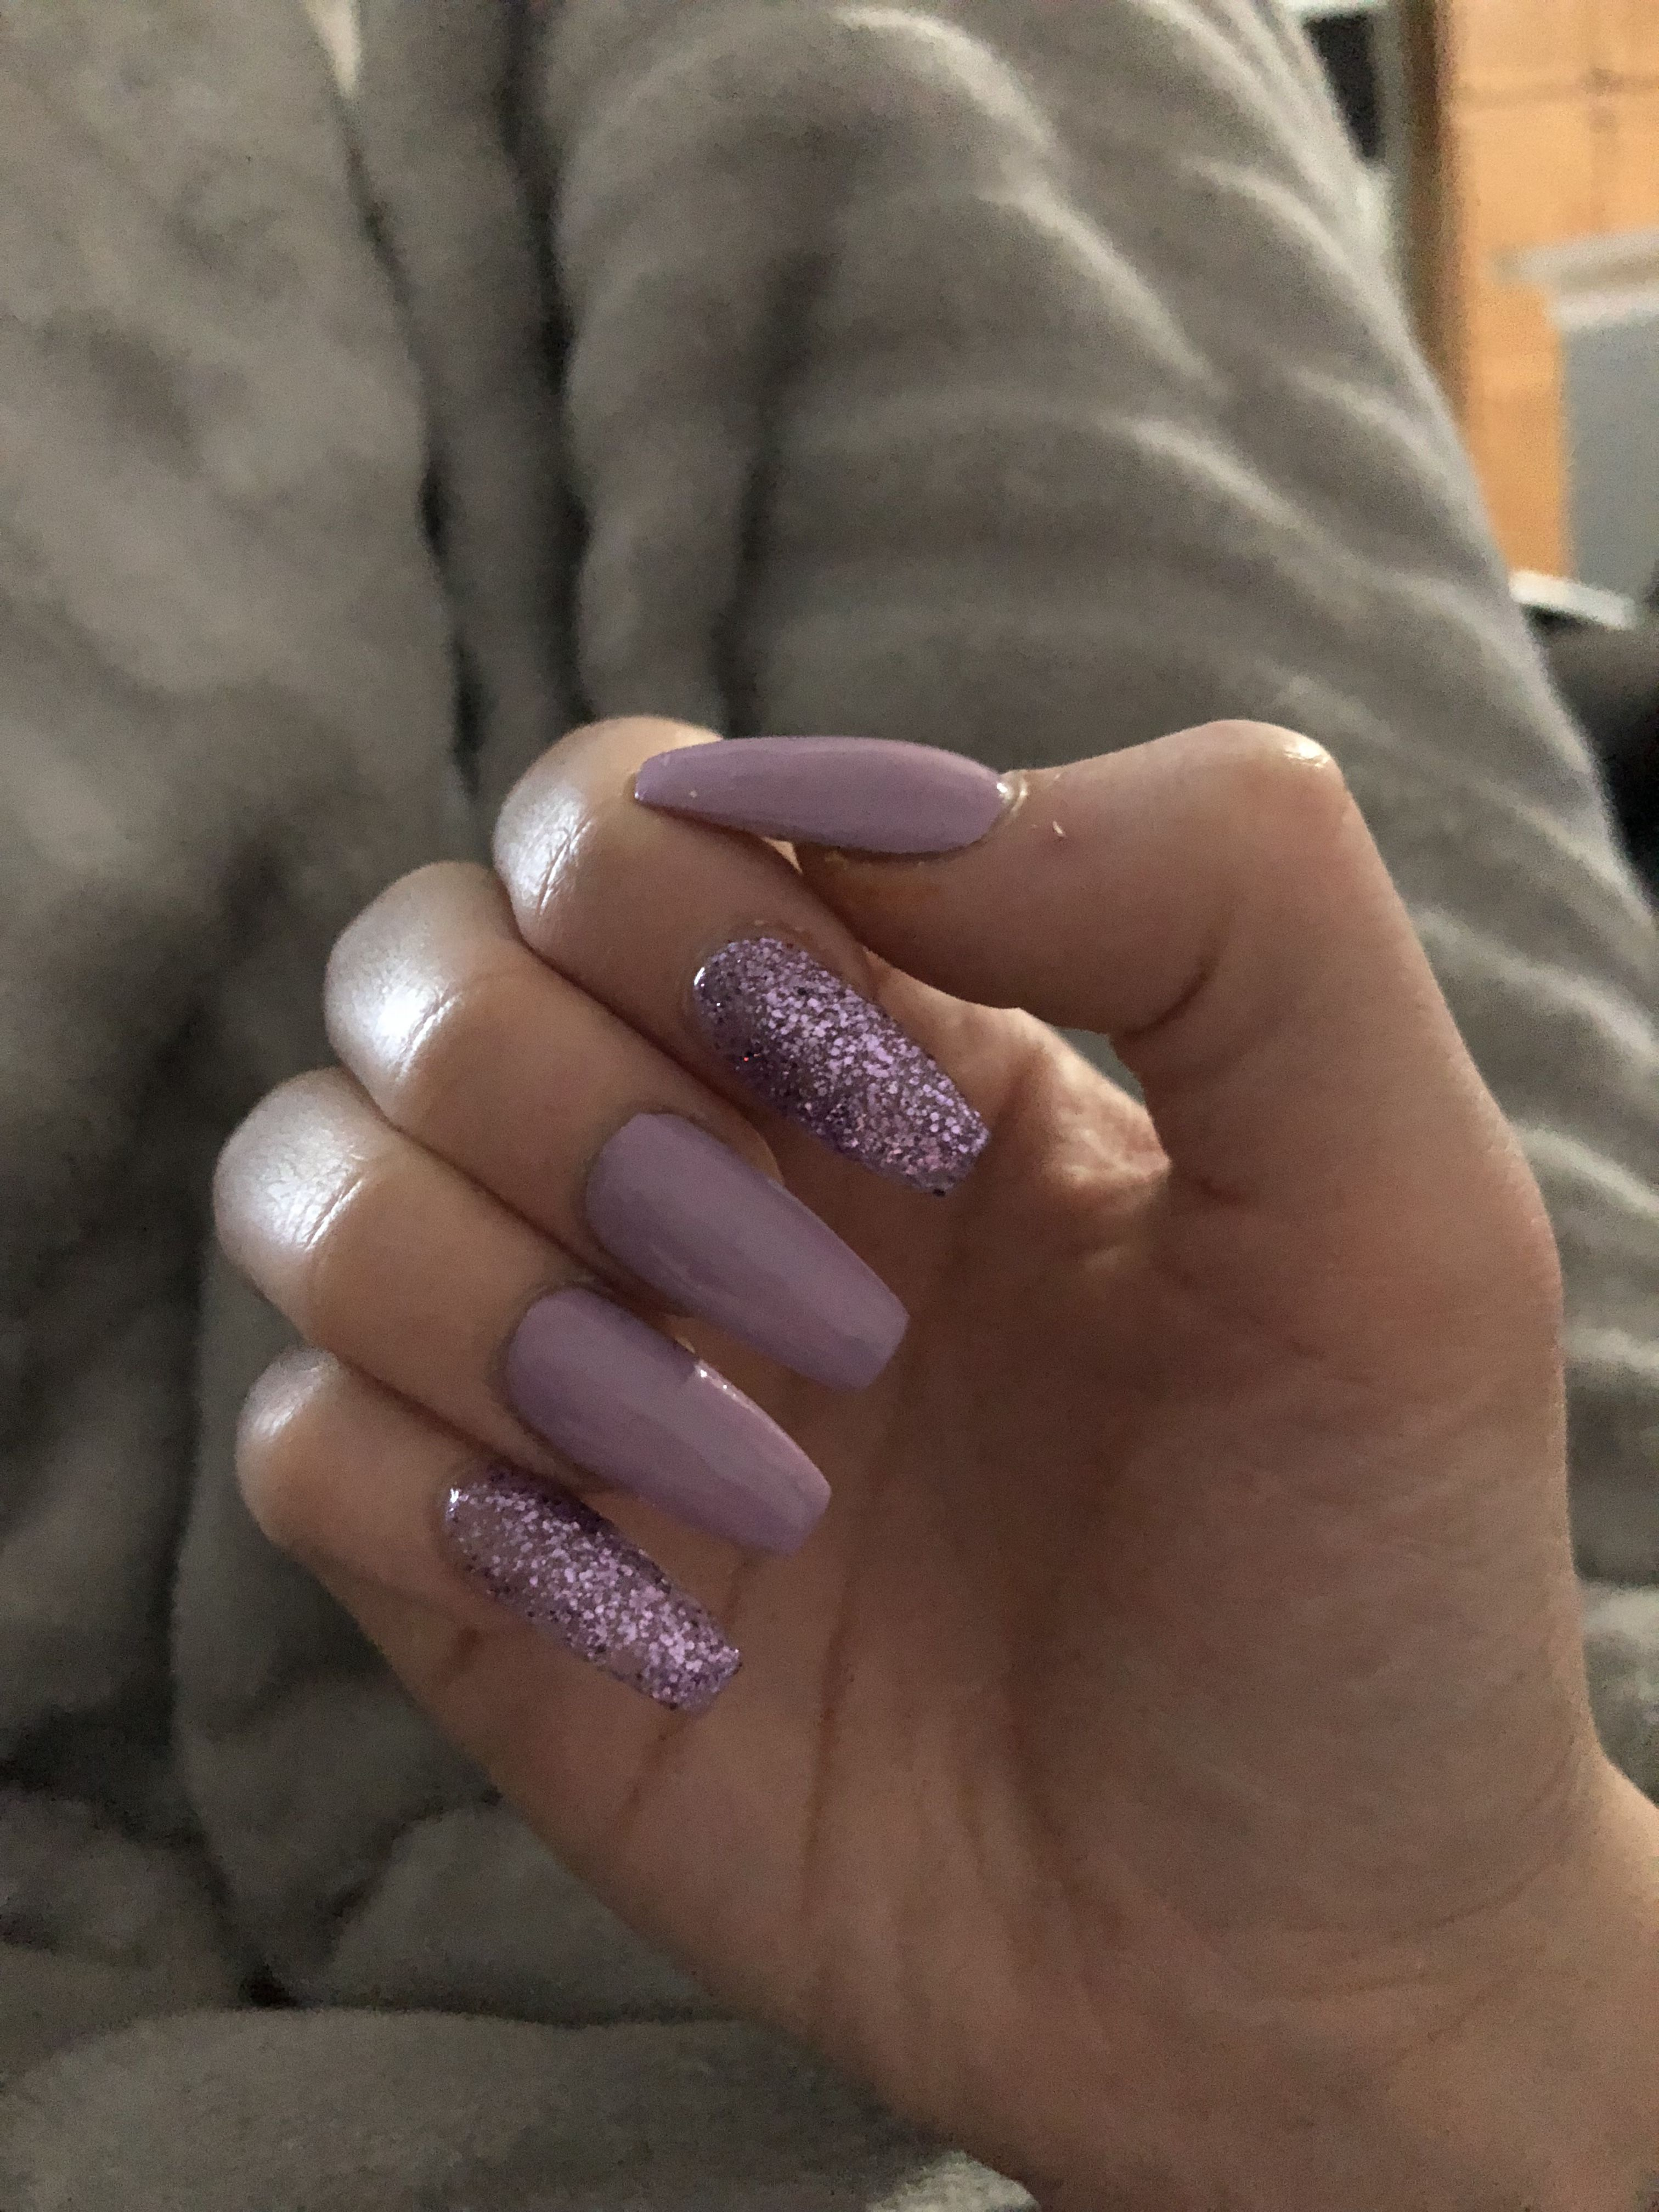 Pink and purple sparkles or glitter nails sparkly and glittery